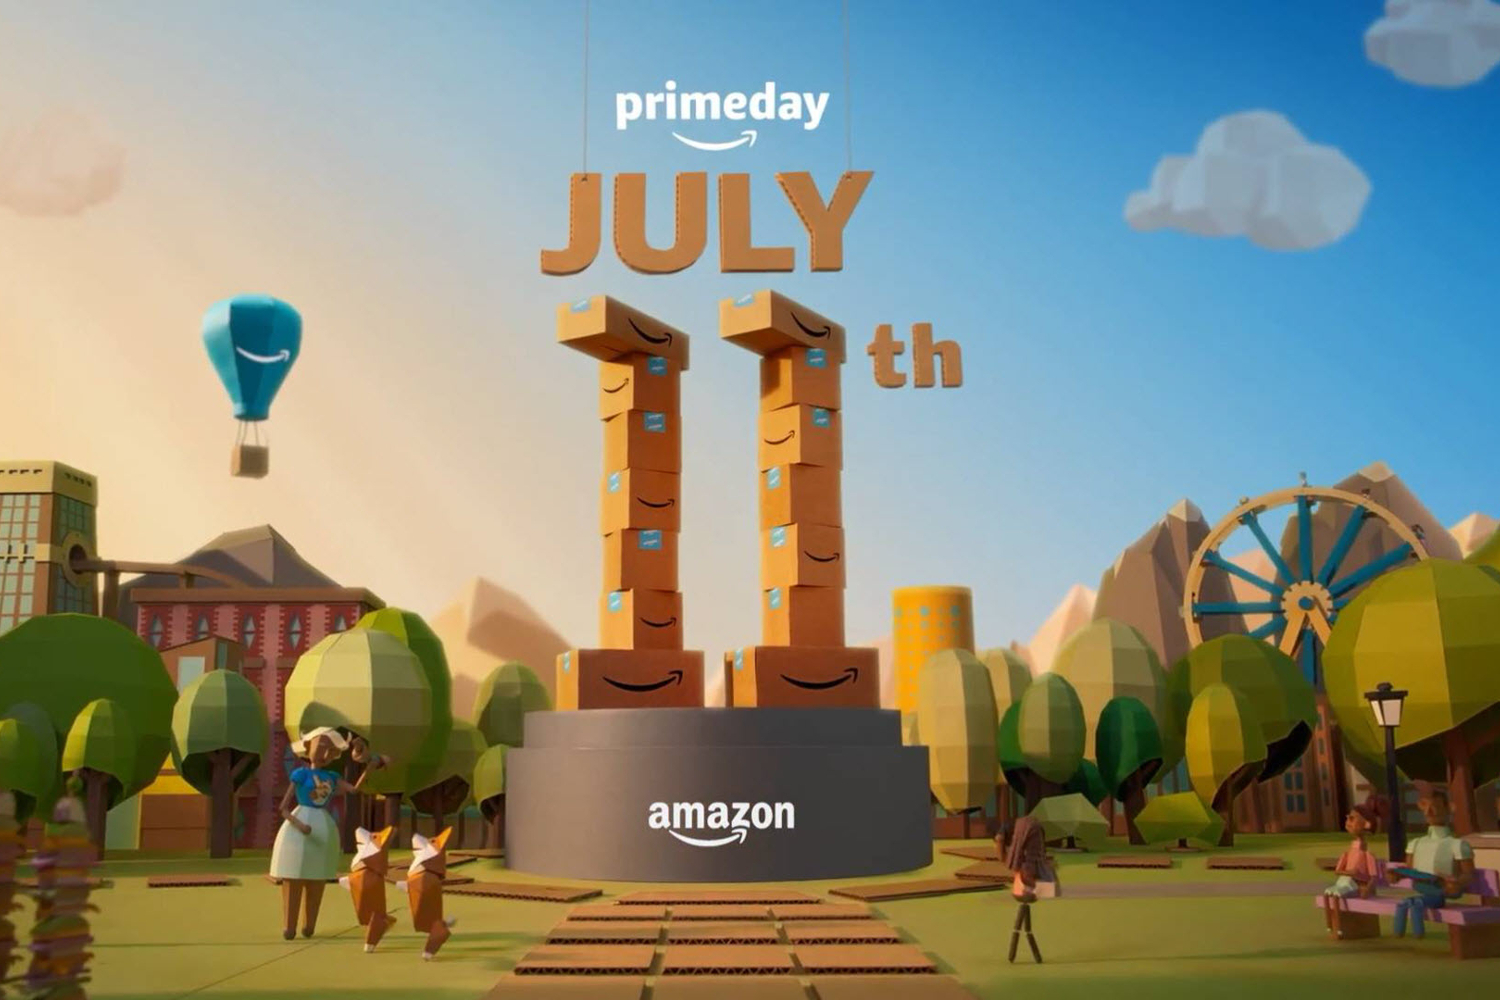 Amazon Prime Day 2017: How to Choose the Best Deals